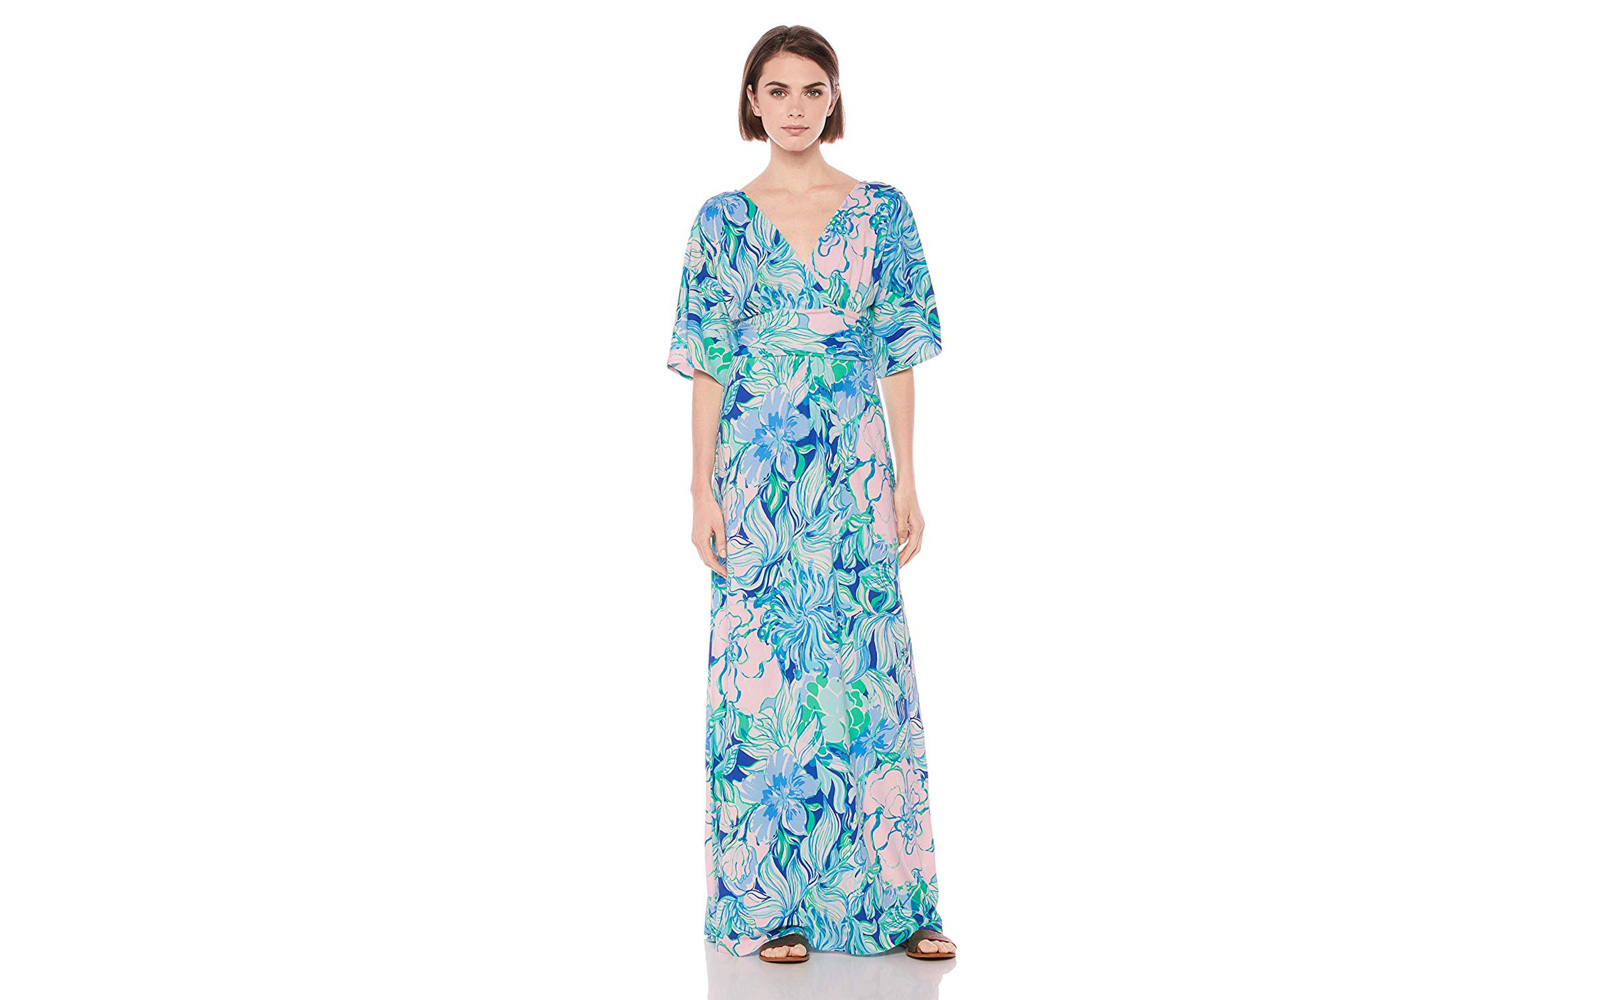 5210a8293d23f Lilly Pulitzer Women's Parigi Maxi Dress. Summer Maxi Dresses. Courtesy of  Amazon